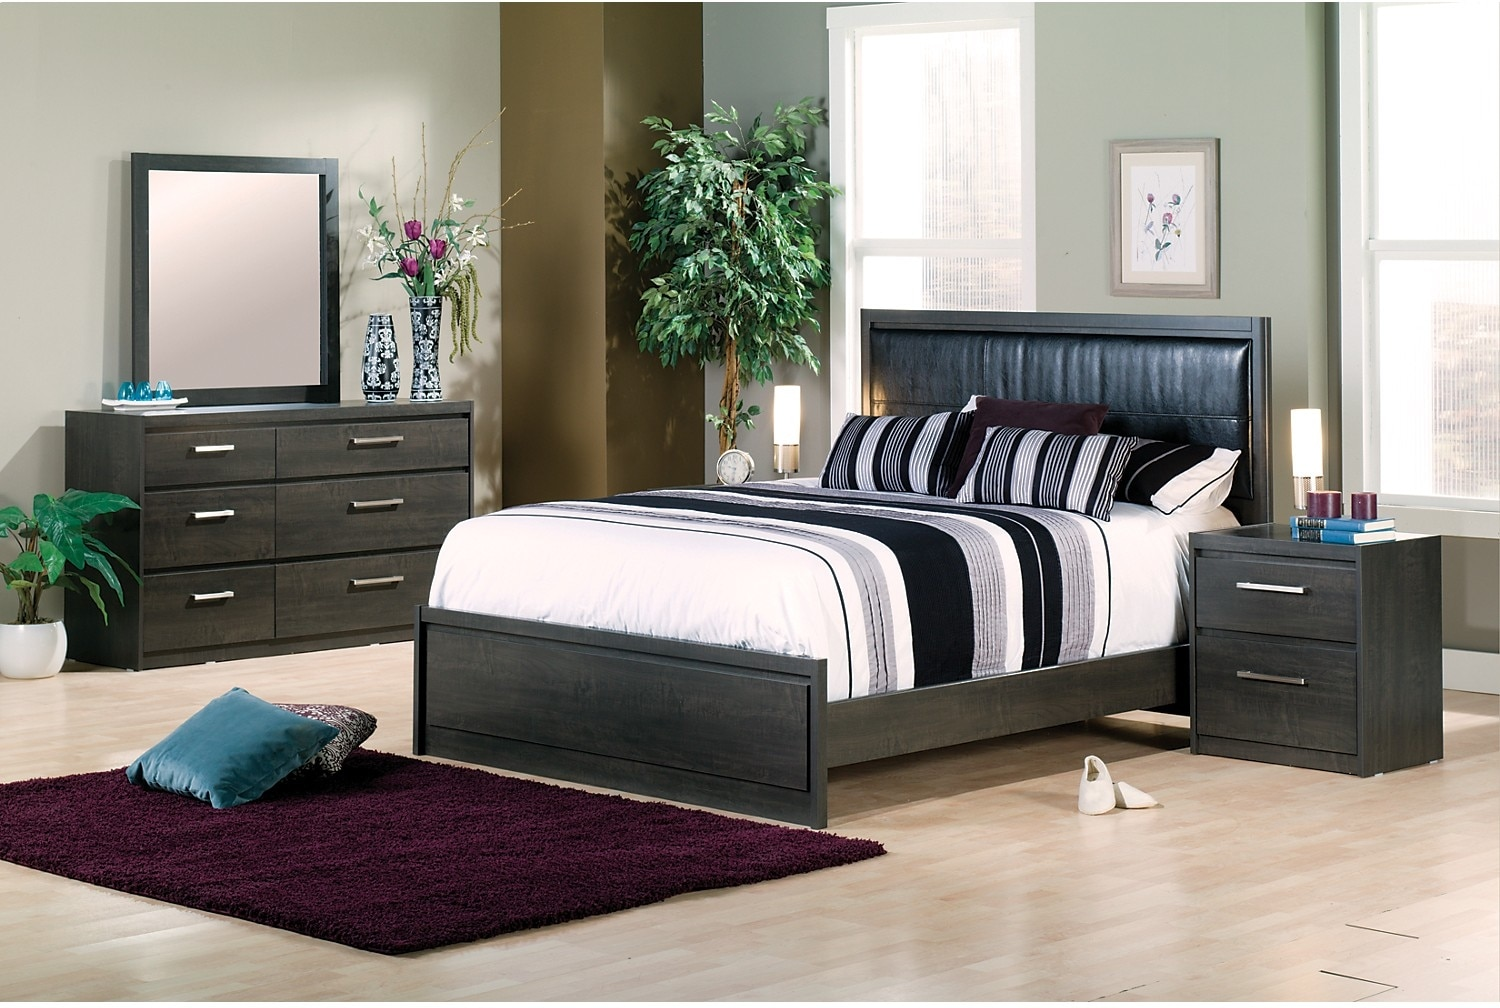 Bedroom Furniture - Tyler 7-Piece King Bedroom Package